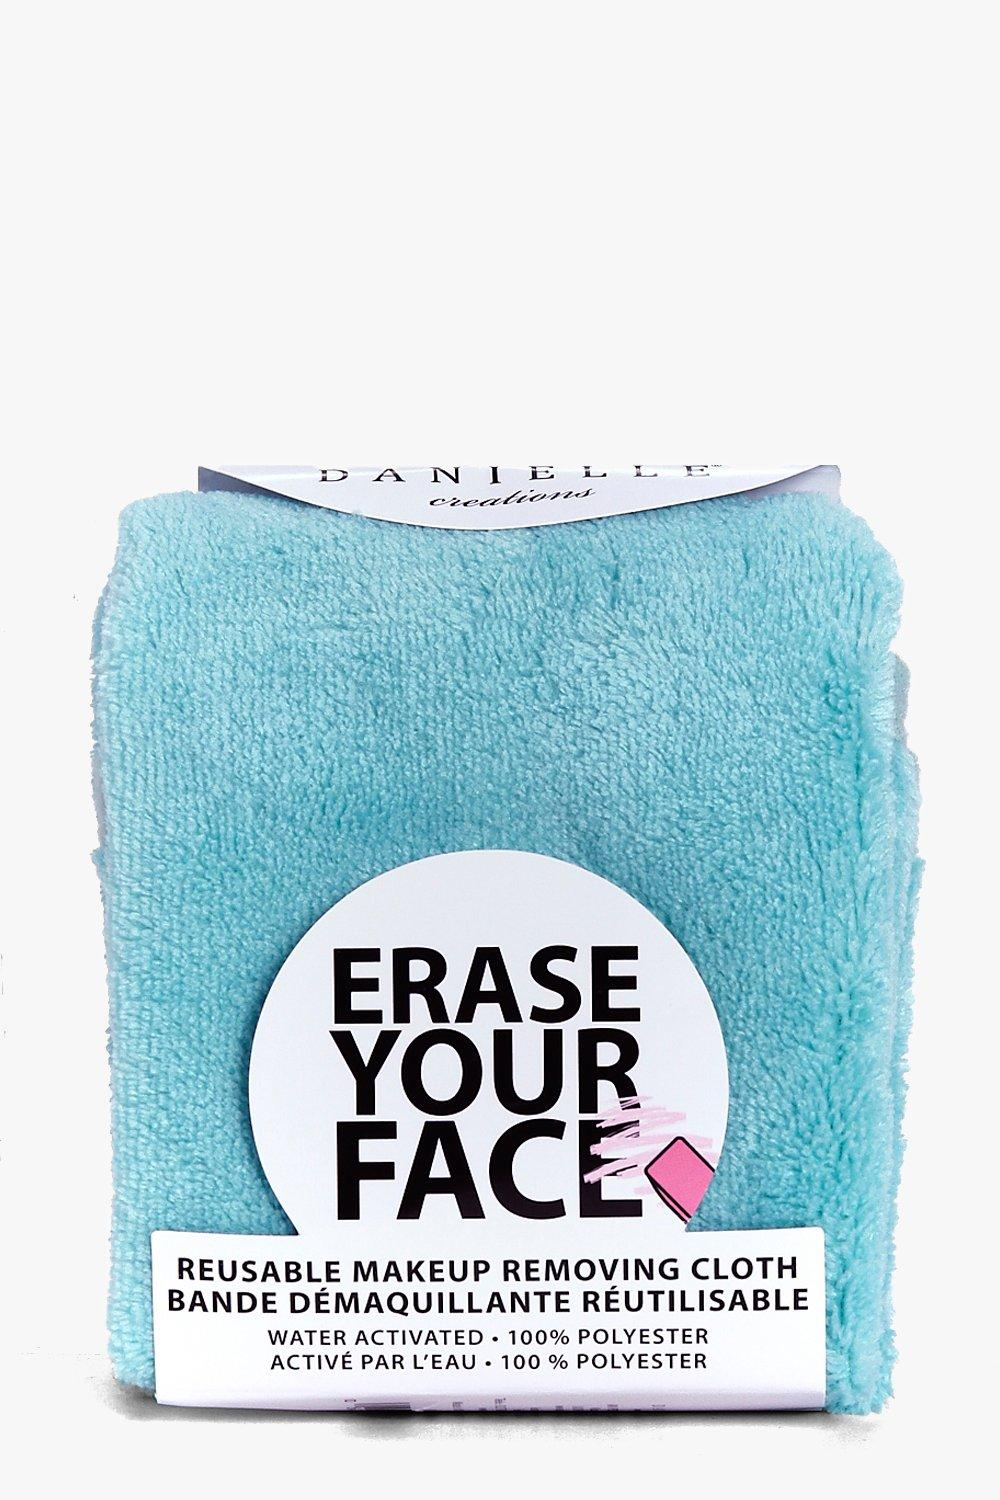 Reusable Make Up Remover Cloth